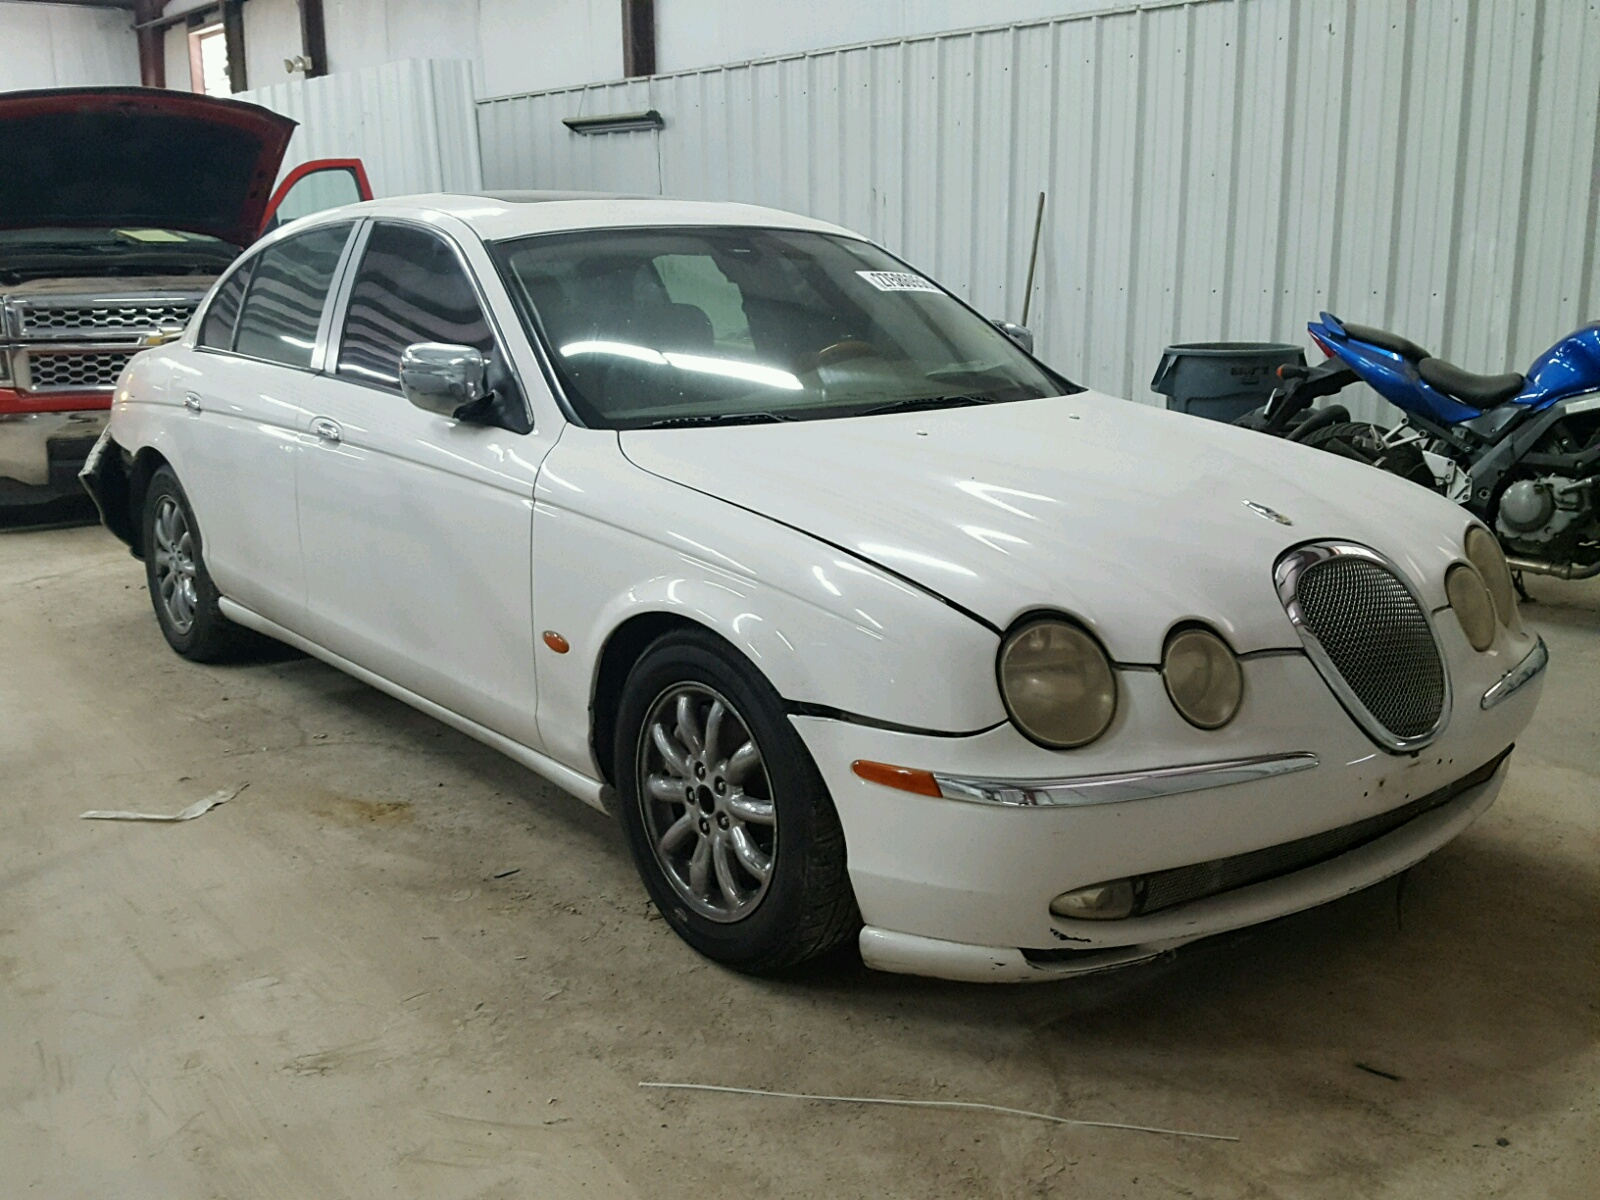 sale fs us trade buy and strong motor central type private tranny img jaguar for classifieds forum s parts